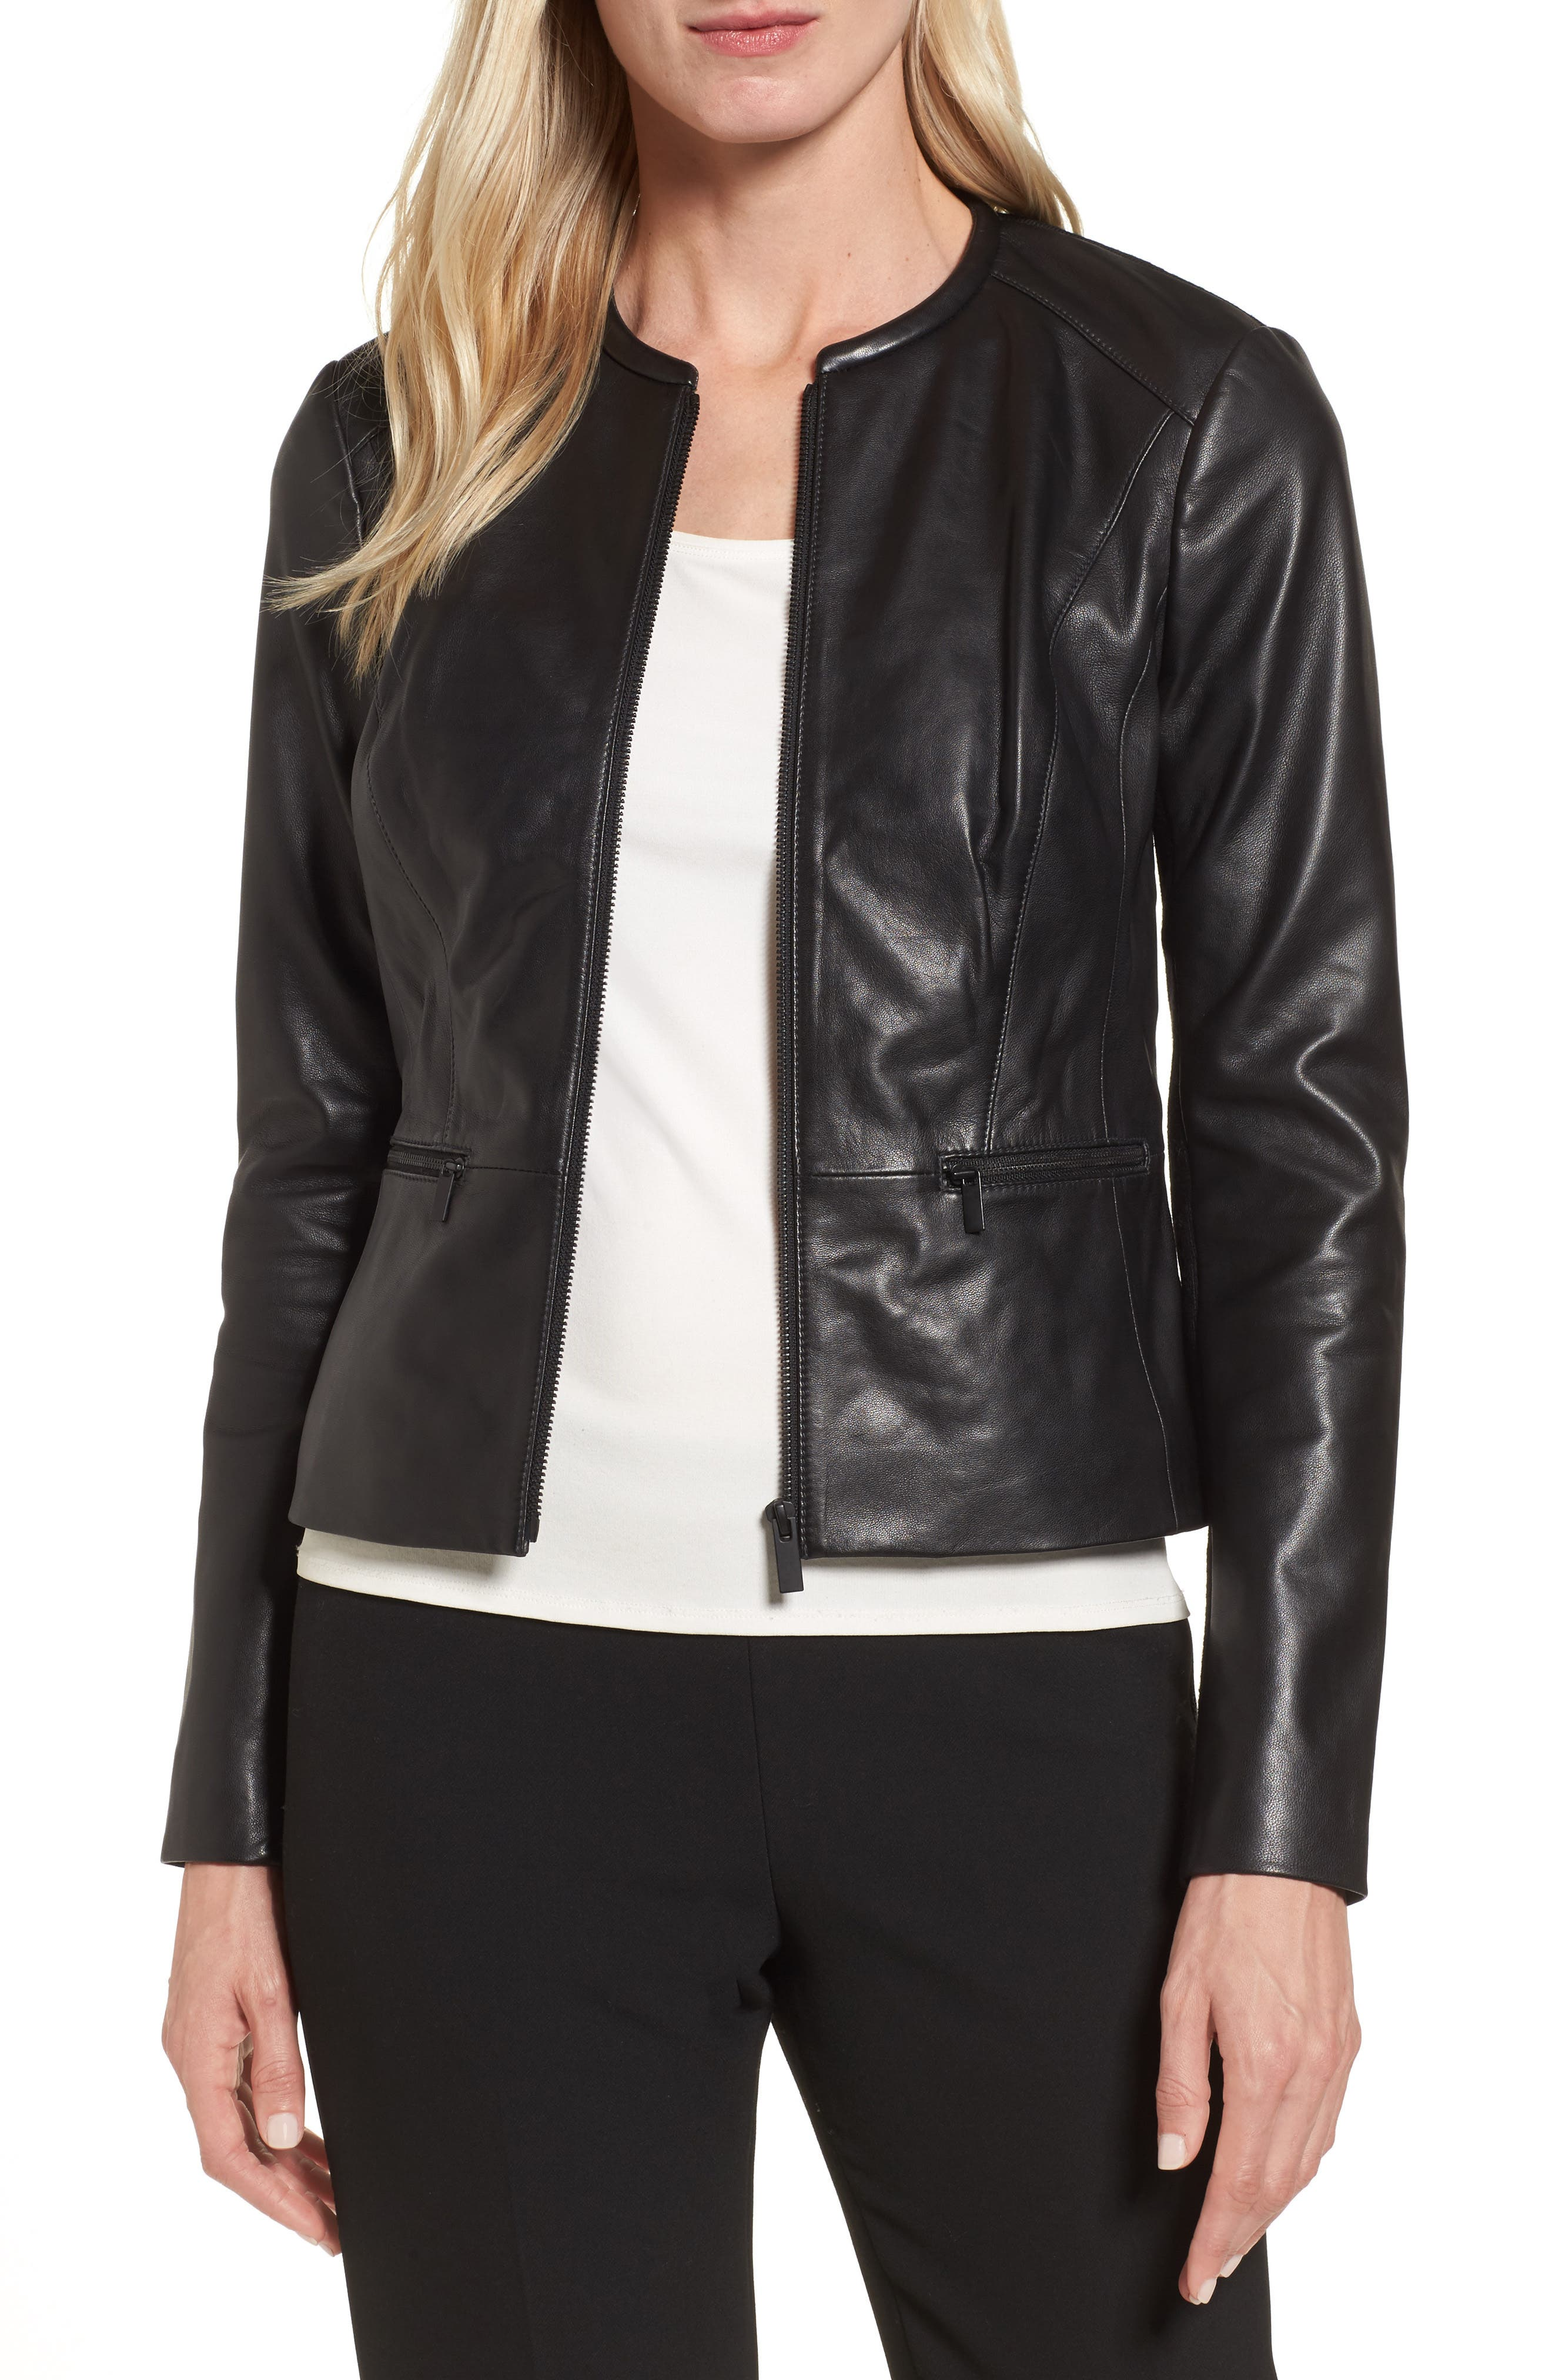 Emerson Rose Leather Jacket